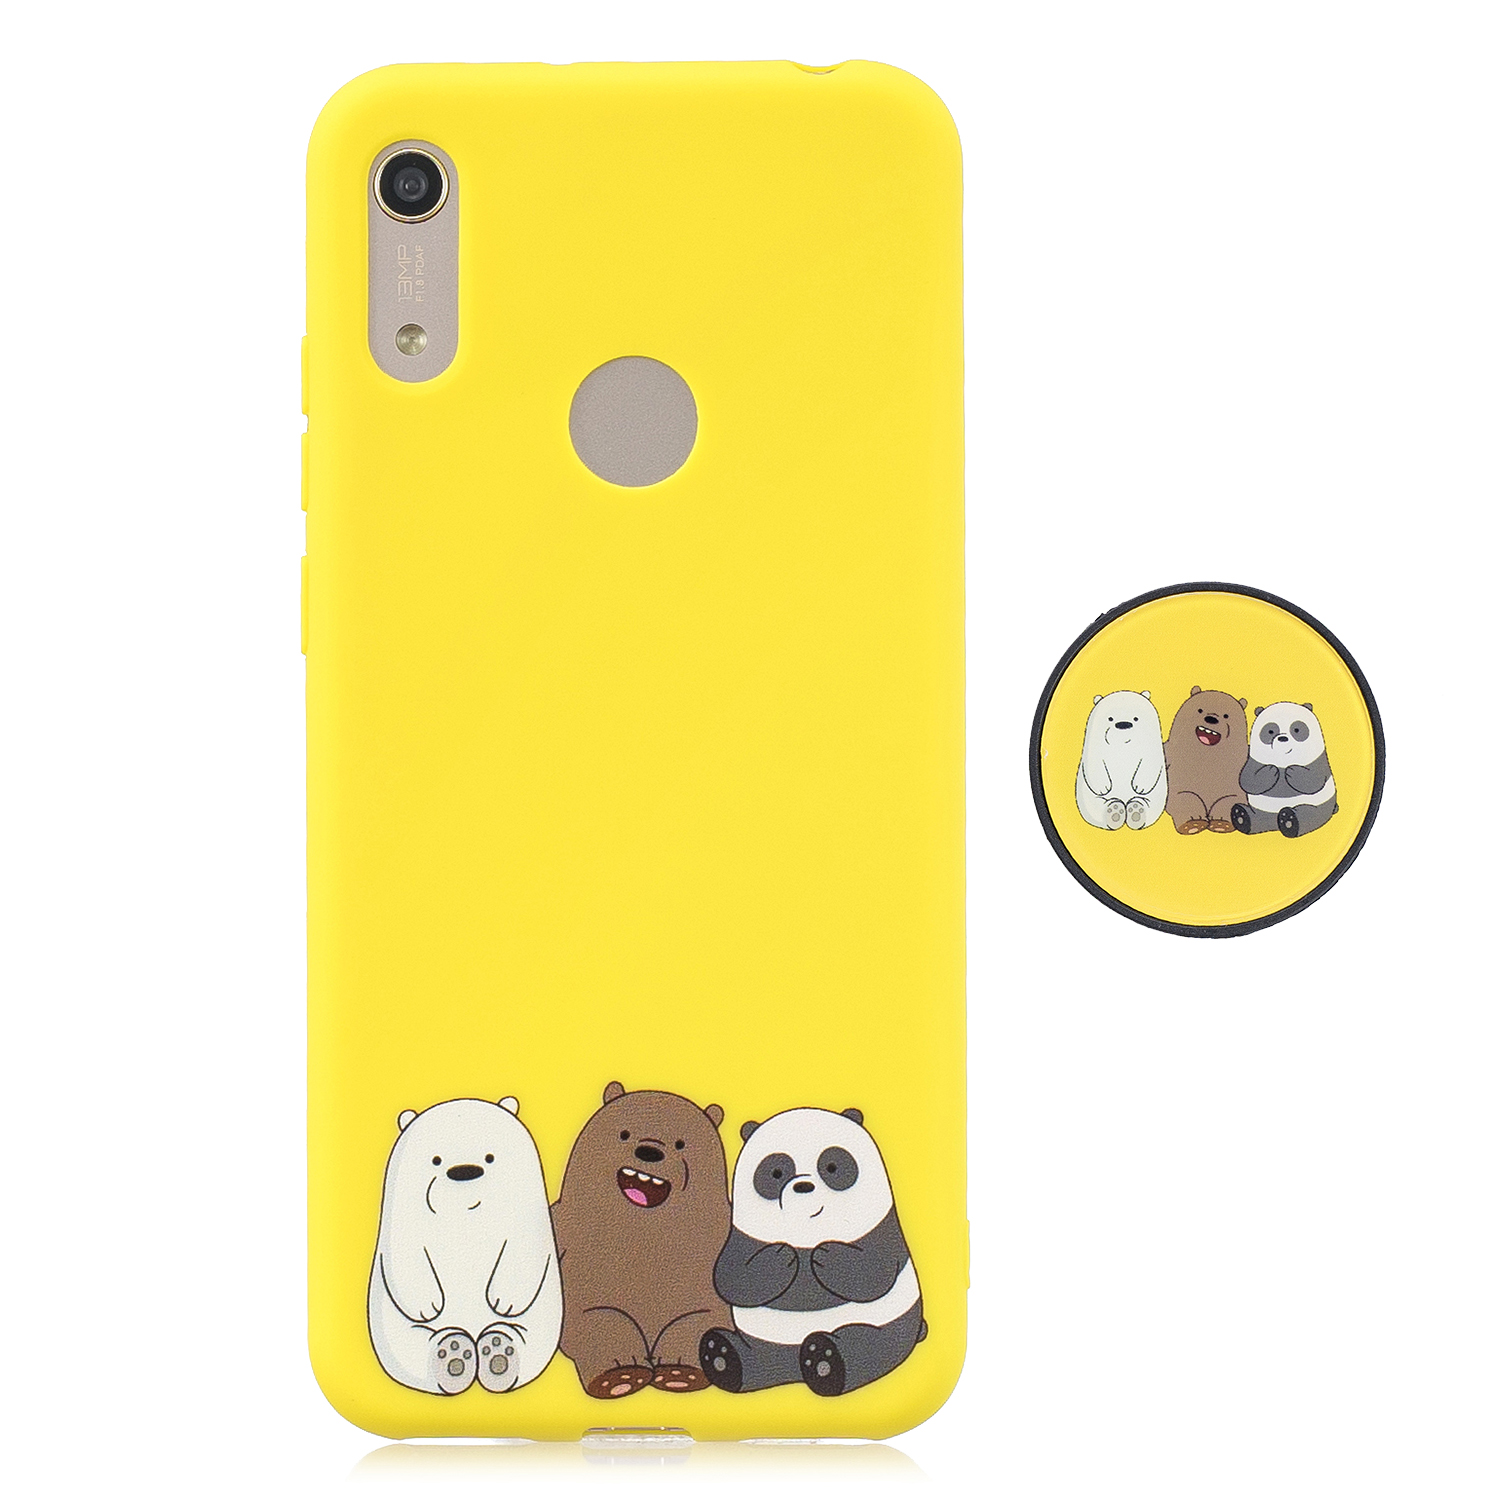 For HUAWEI Y6 2019 Flexible Stand Holder Case Soft TPU Full Cover Case Phone Cover Cute Phone Case 7